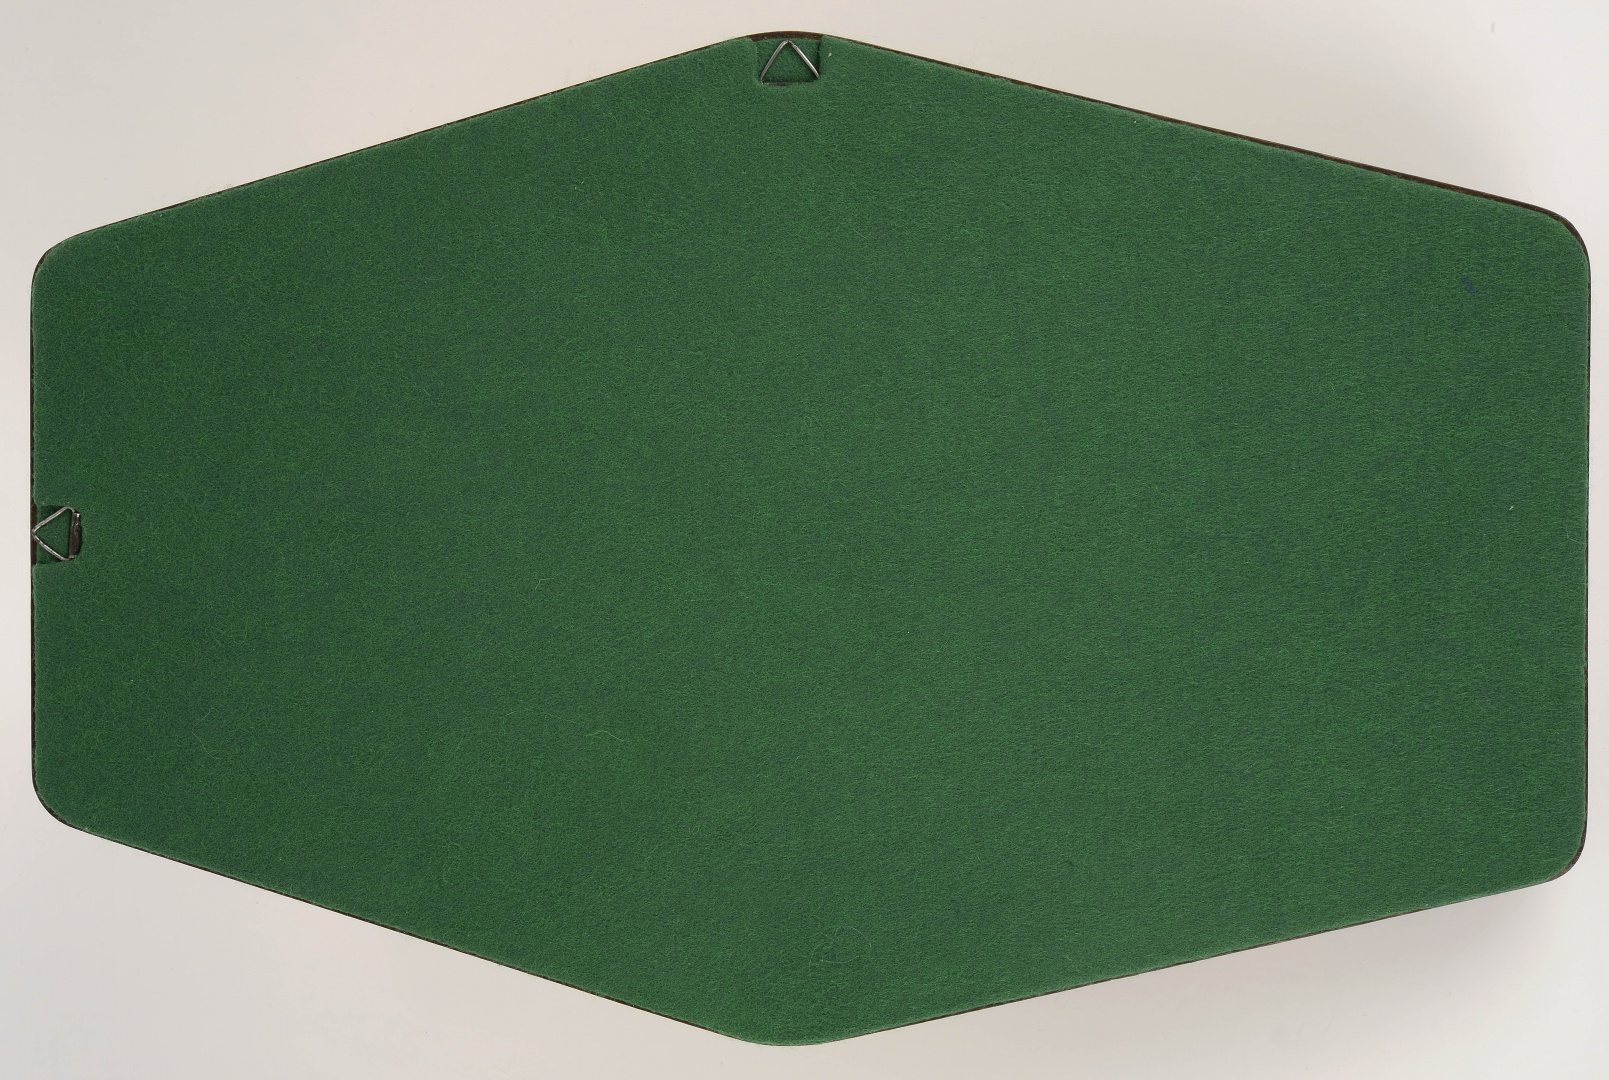 fig 46. The reverse side of the new base was covered with green broadcloth and provided with two hanging loops.